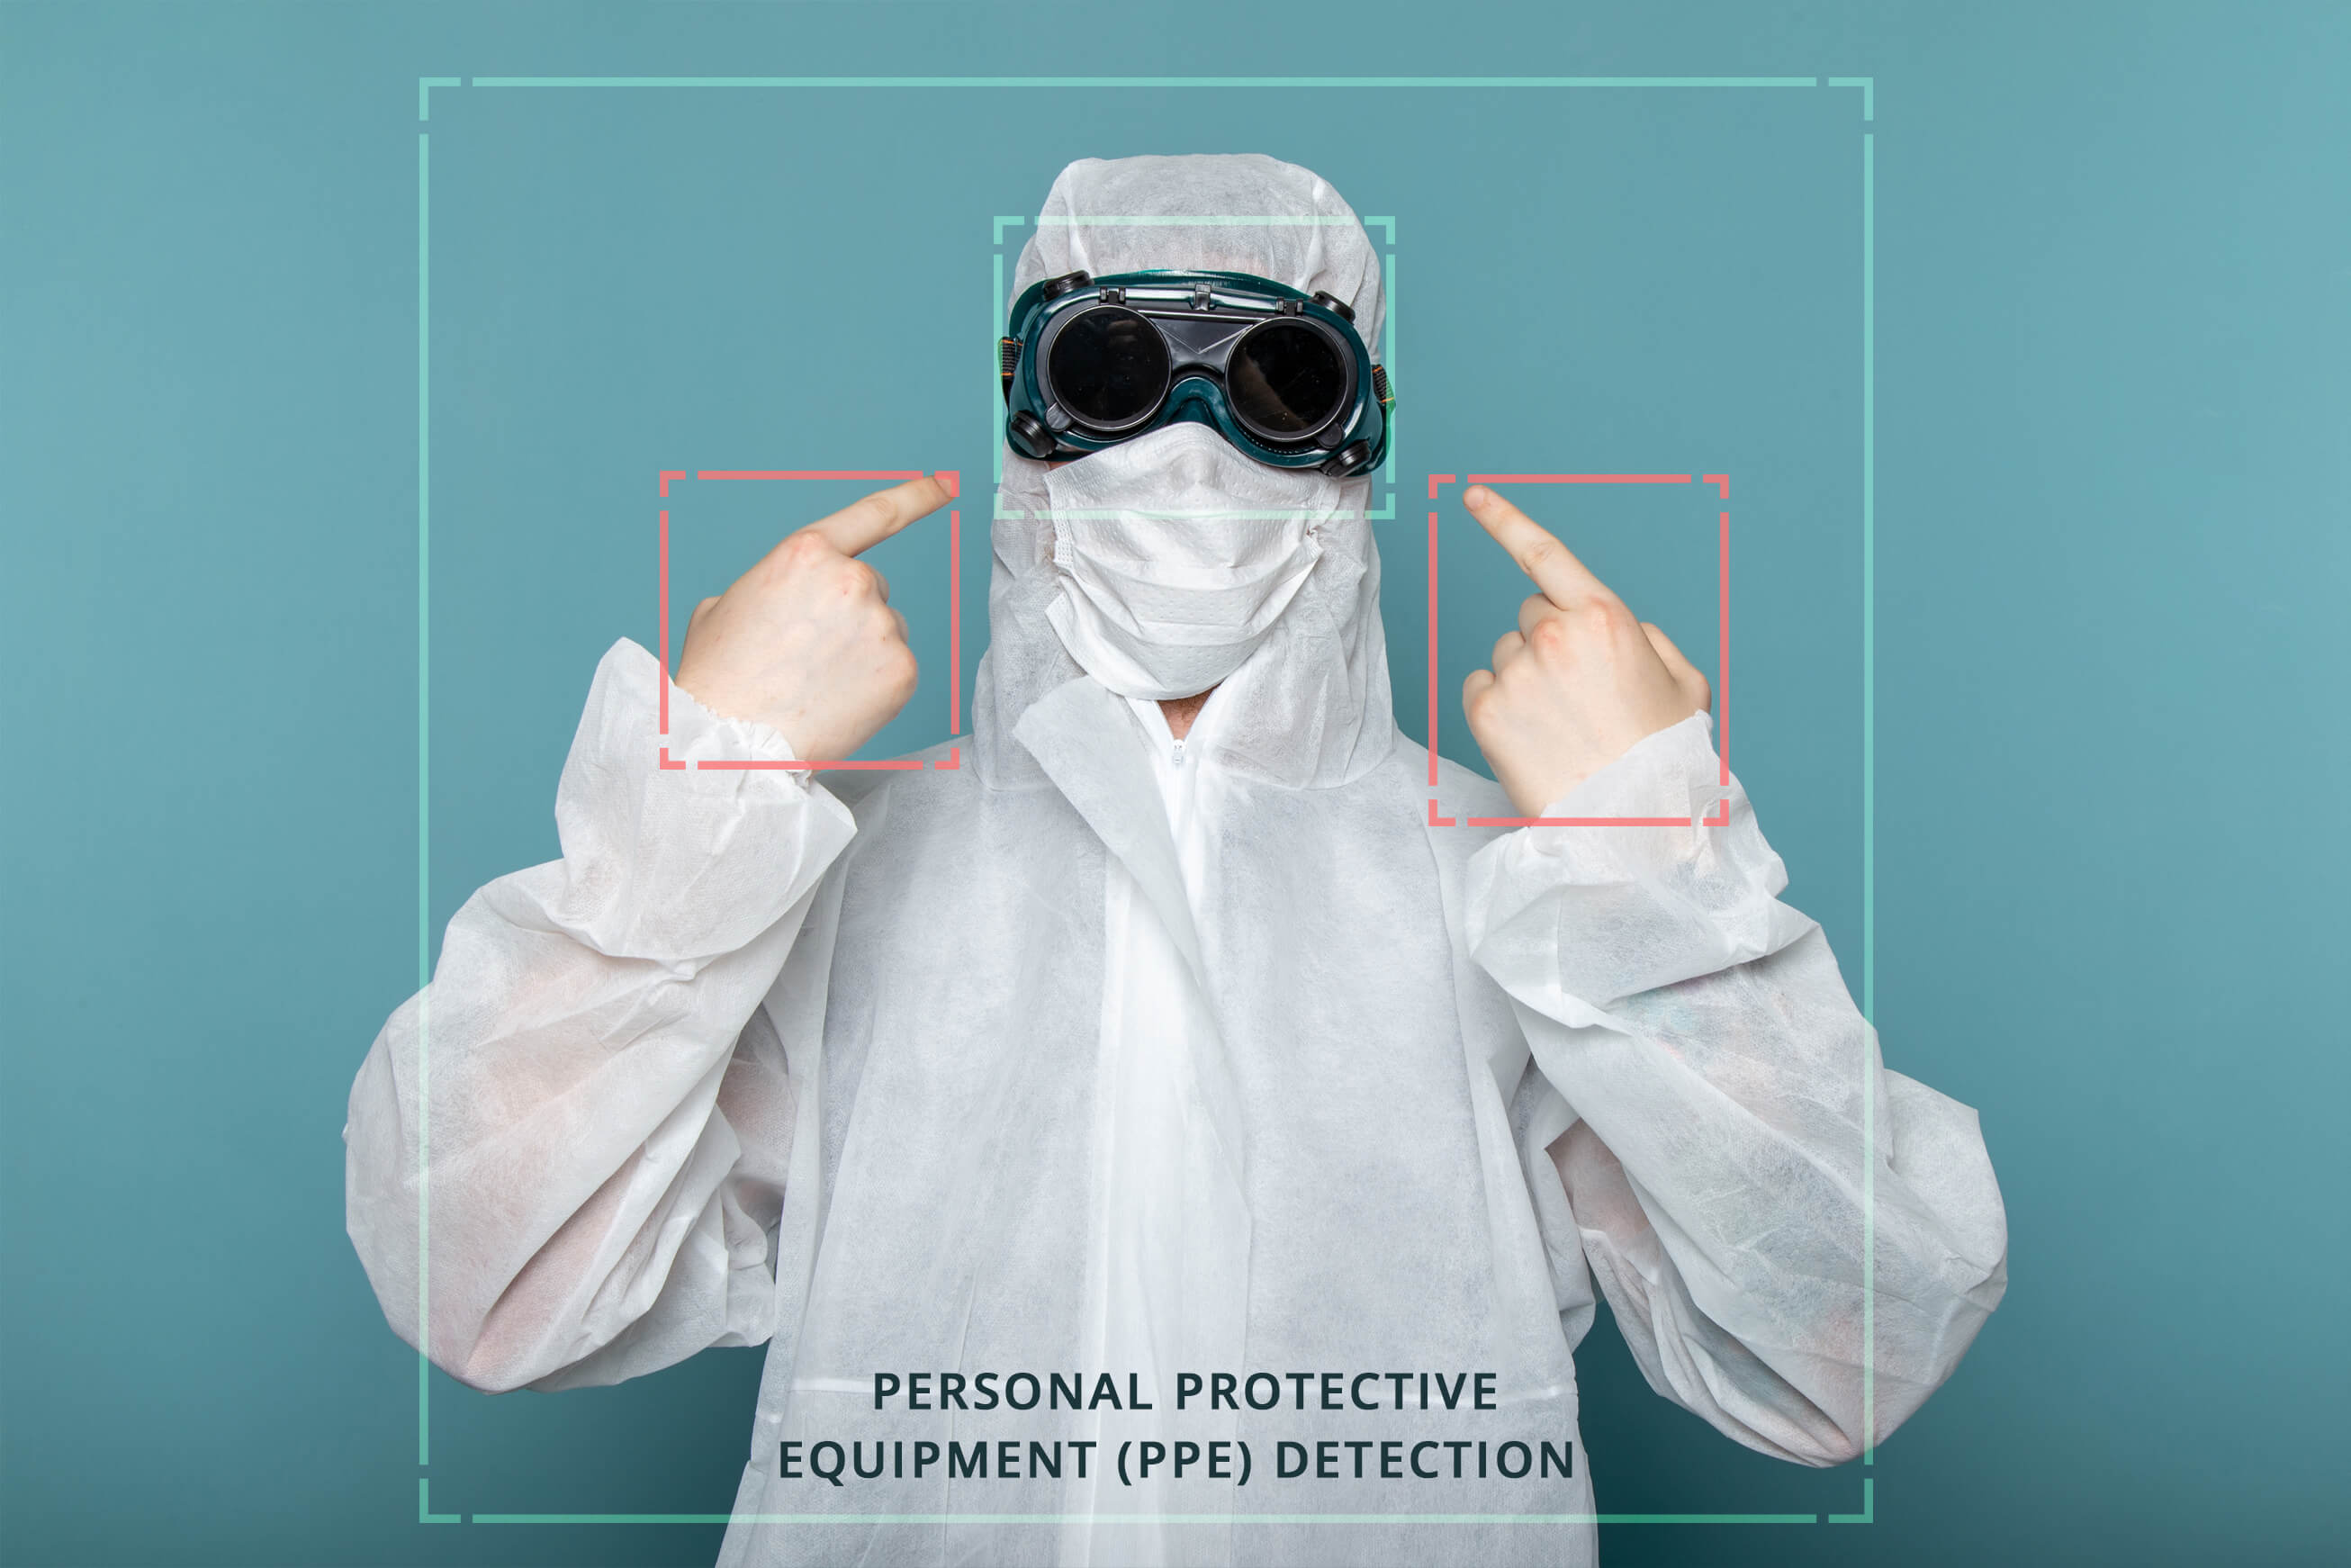 Personal Protective Equipment (PPE) Detection